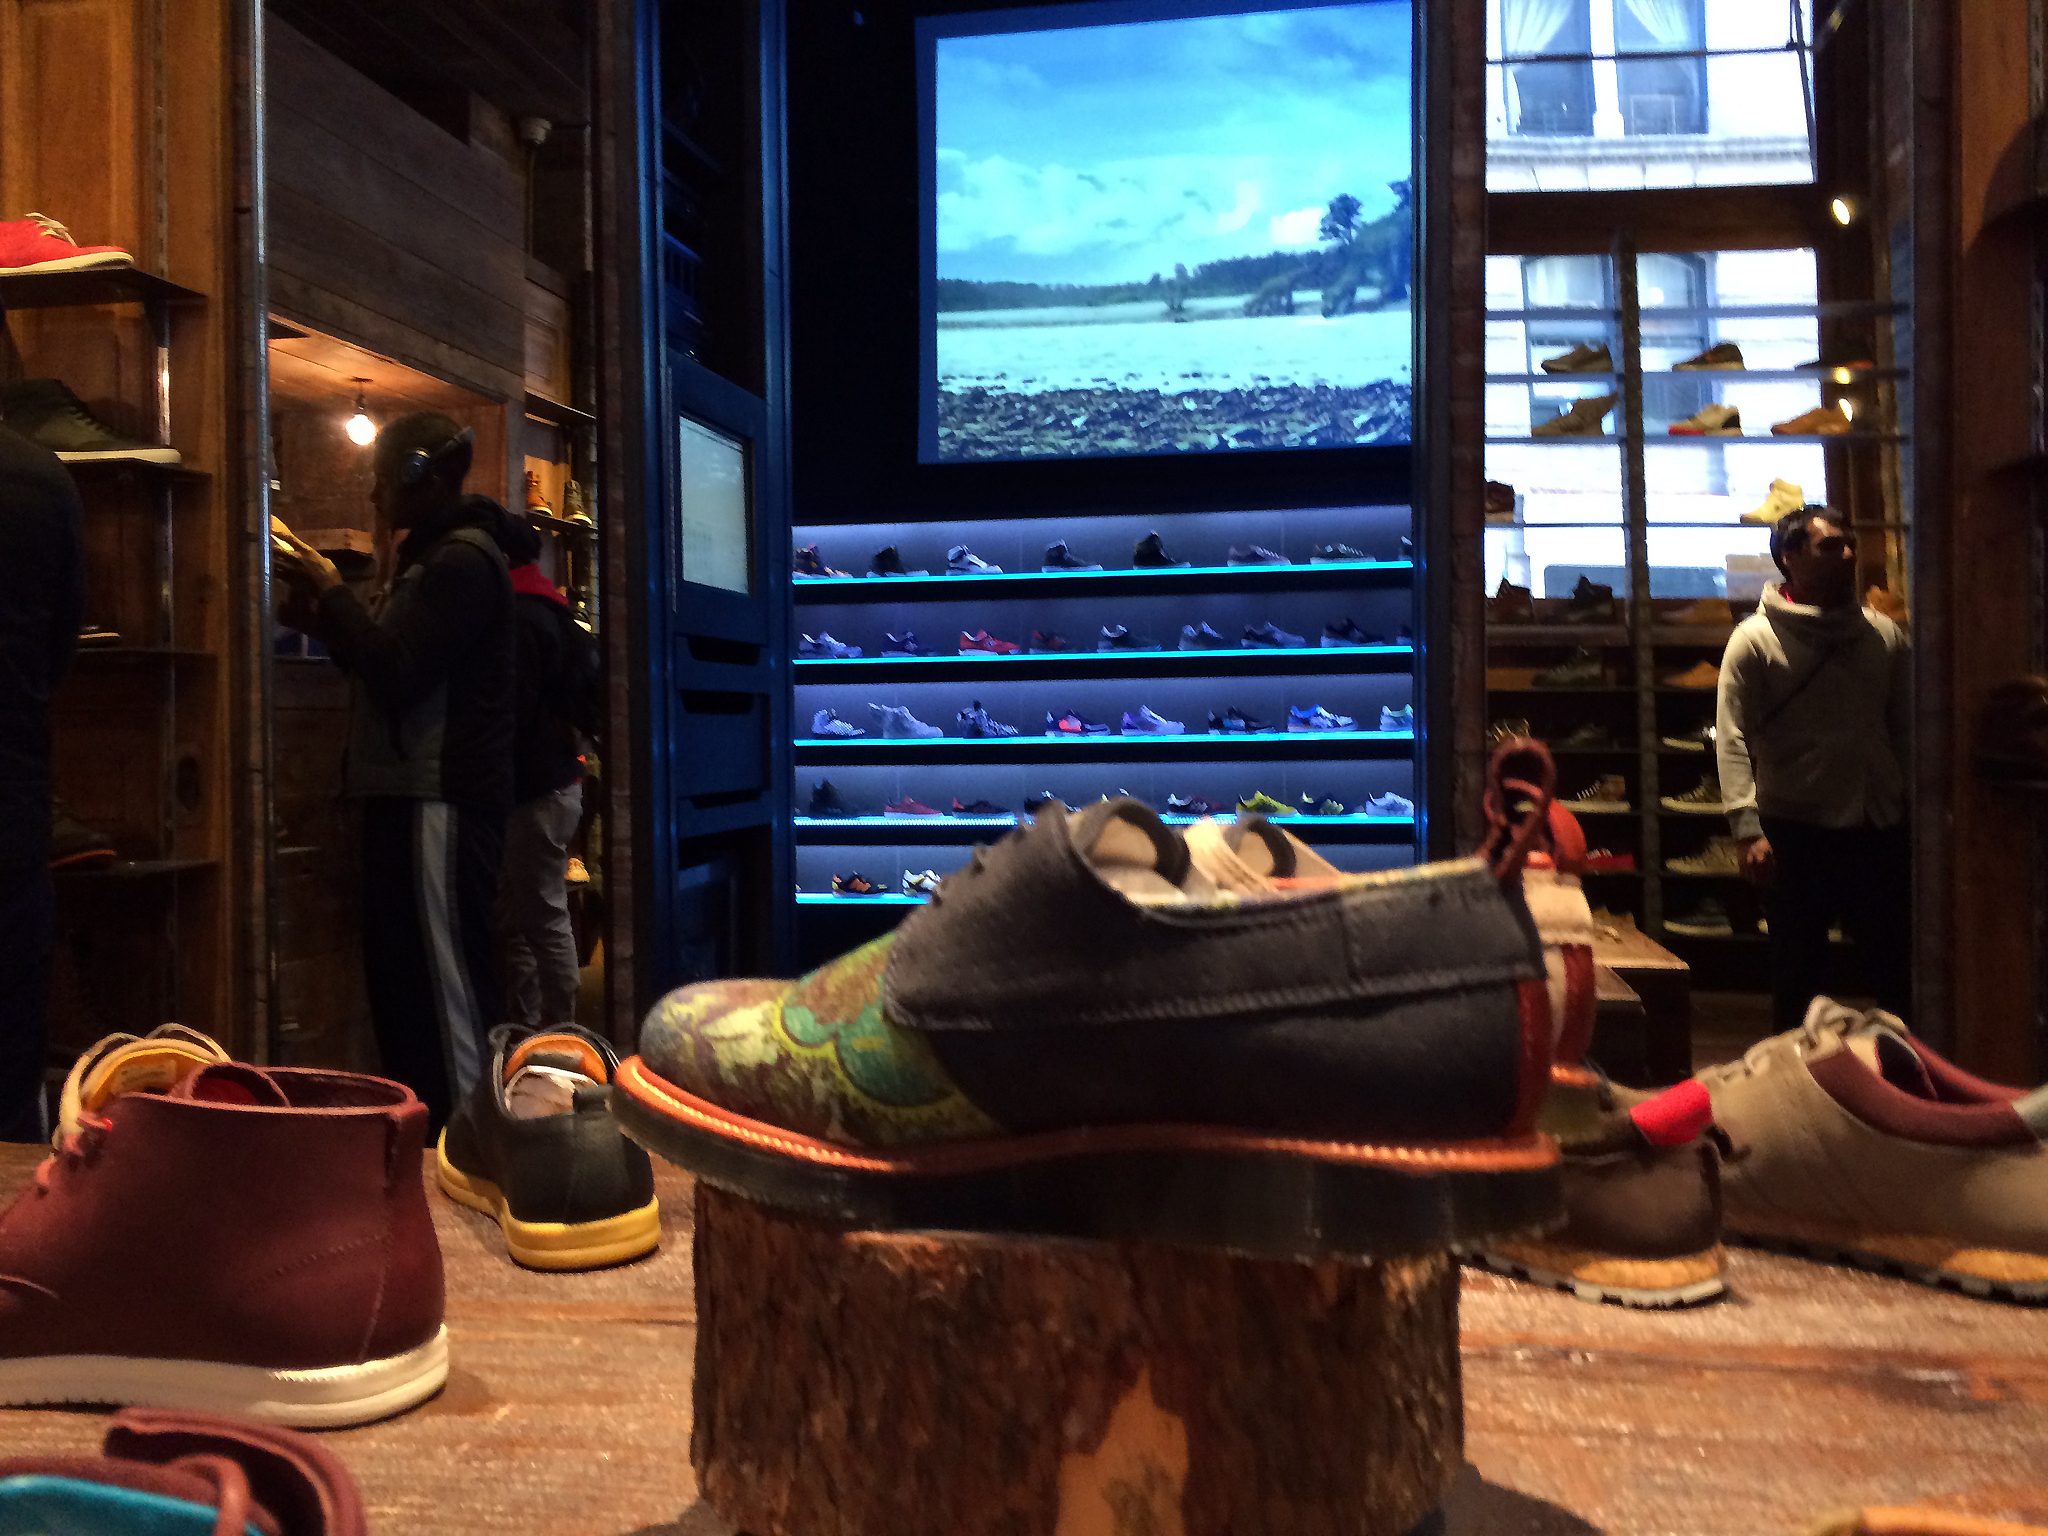 Men's shoes at Kith in New York. Photo by alphacityguides.